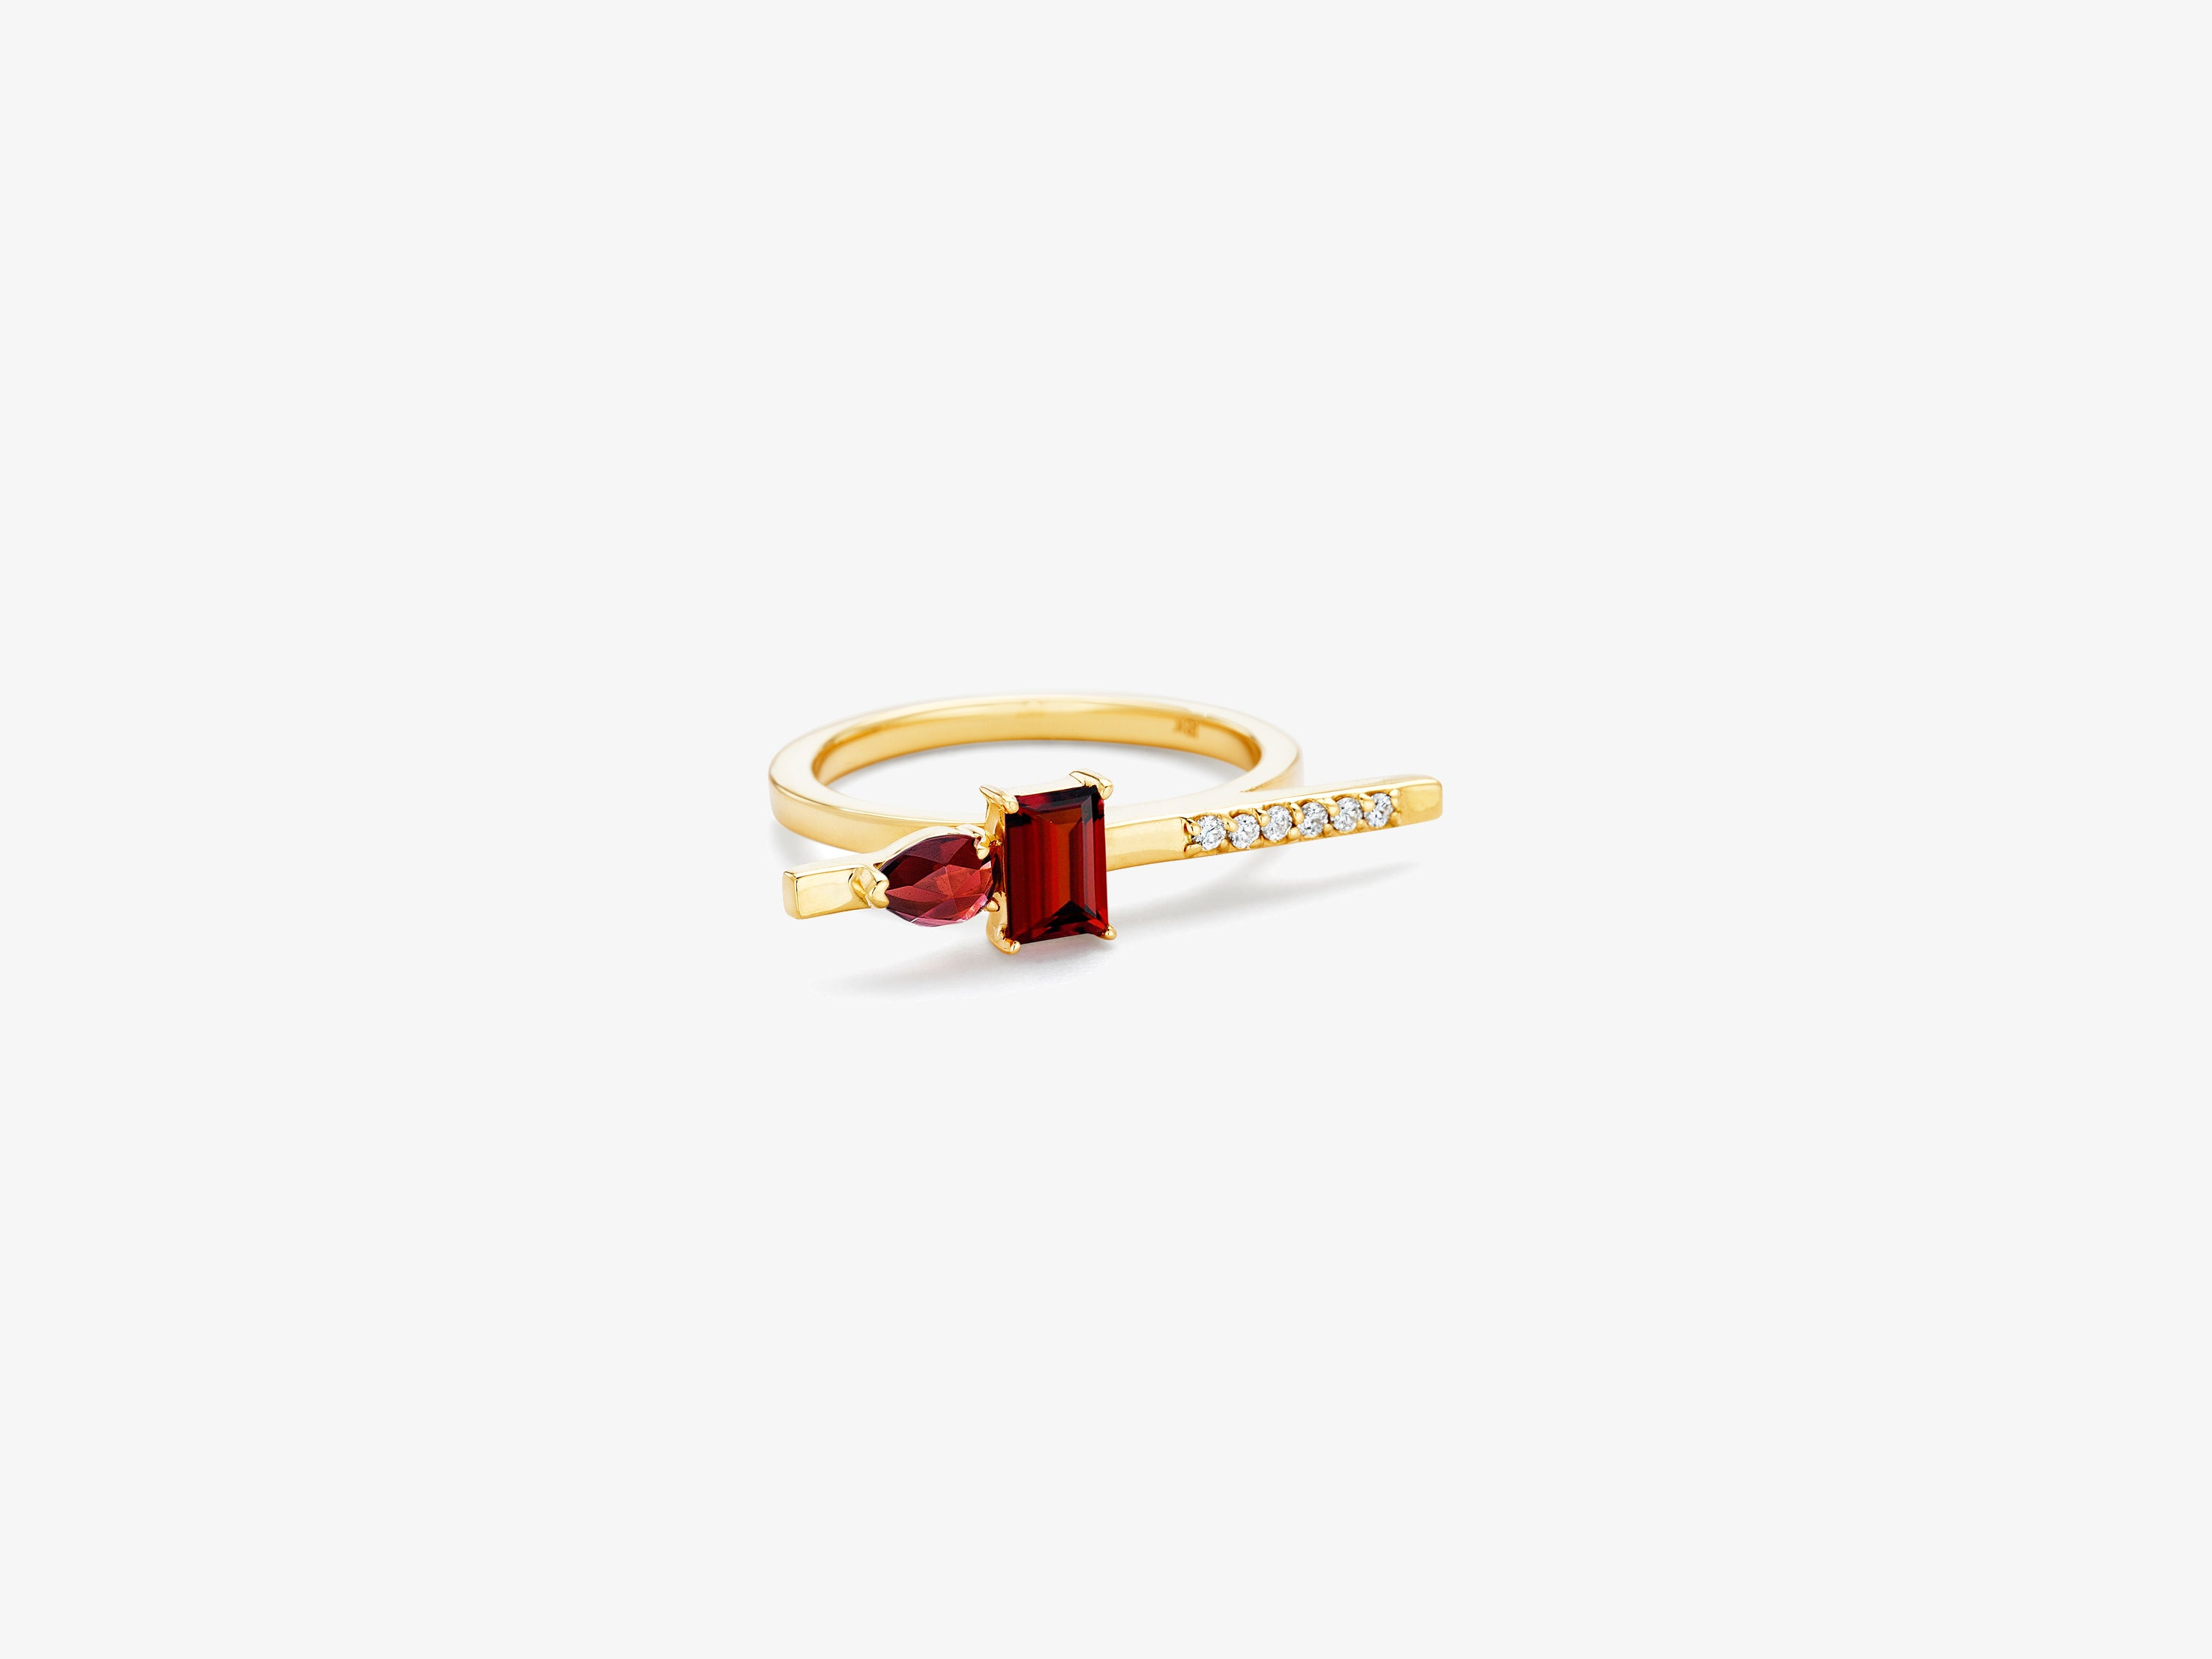 Diamond Bar Ring with Rectangle and Pear Shaped Gemstone Details